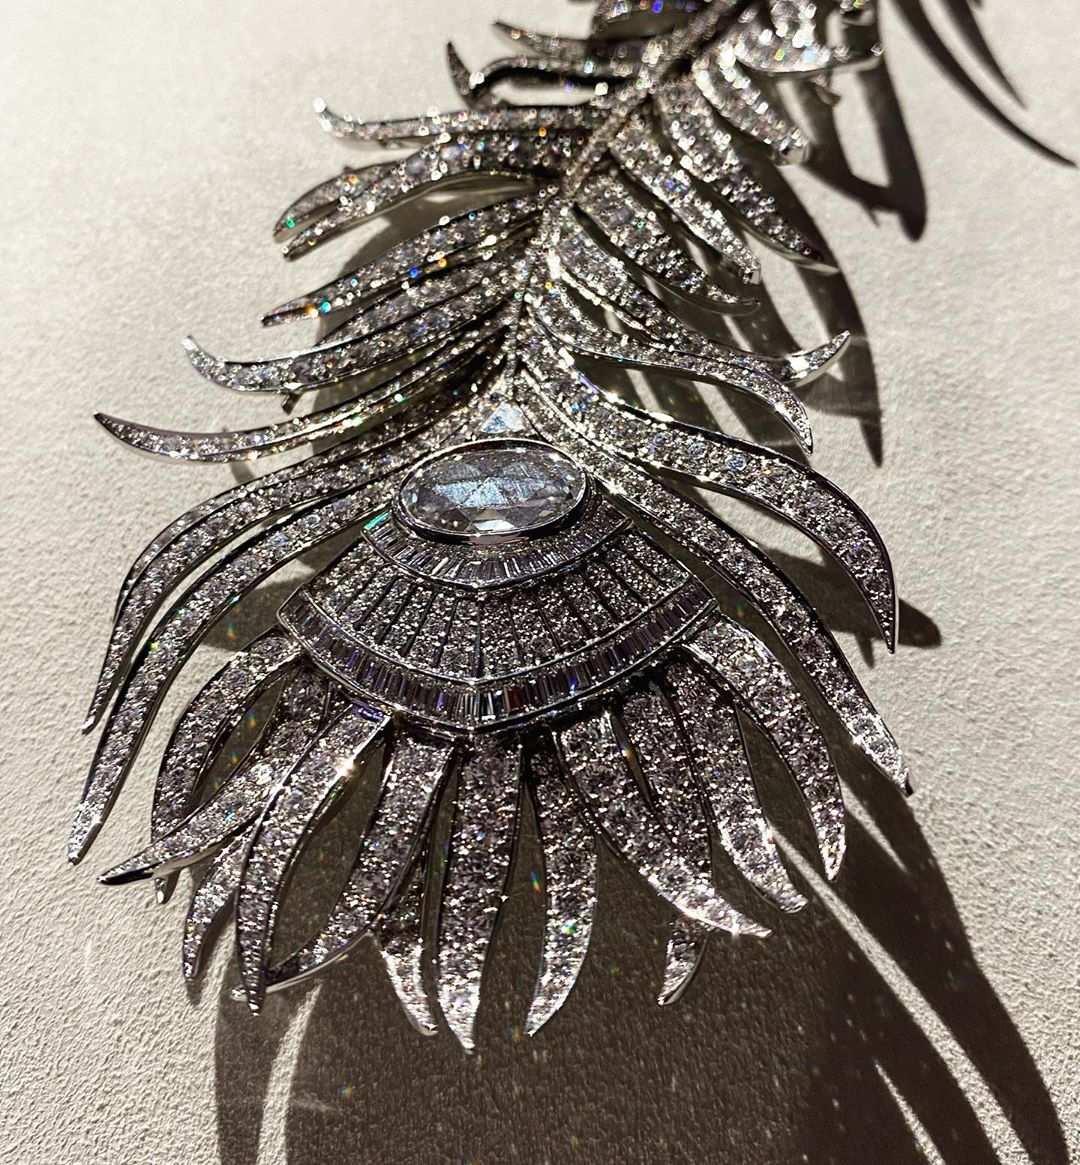 A #highjewelry collection dedicated to the #pointdinterrogation necklace @boucheron by @clairechoisne